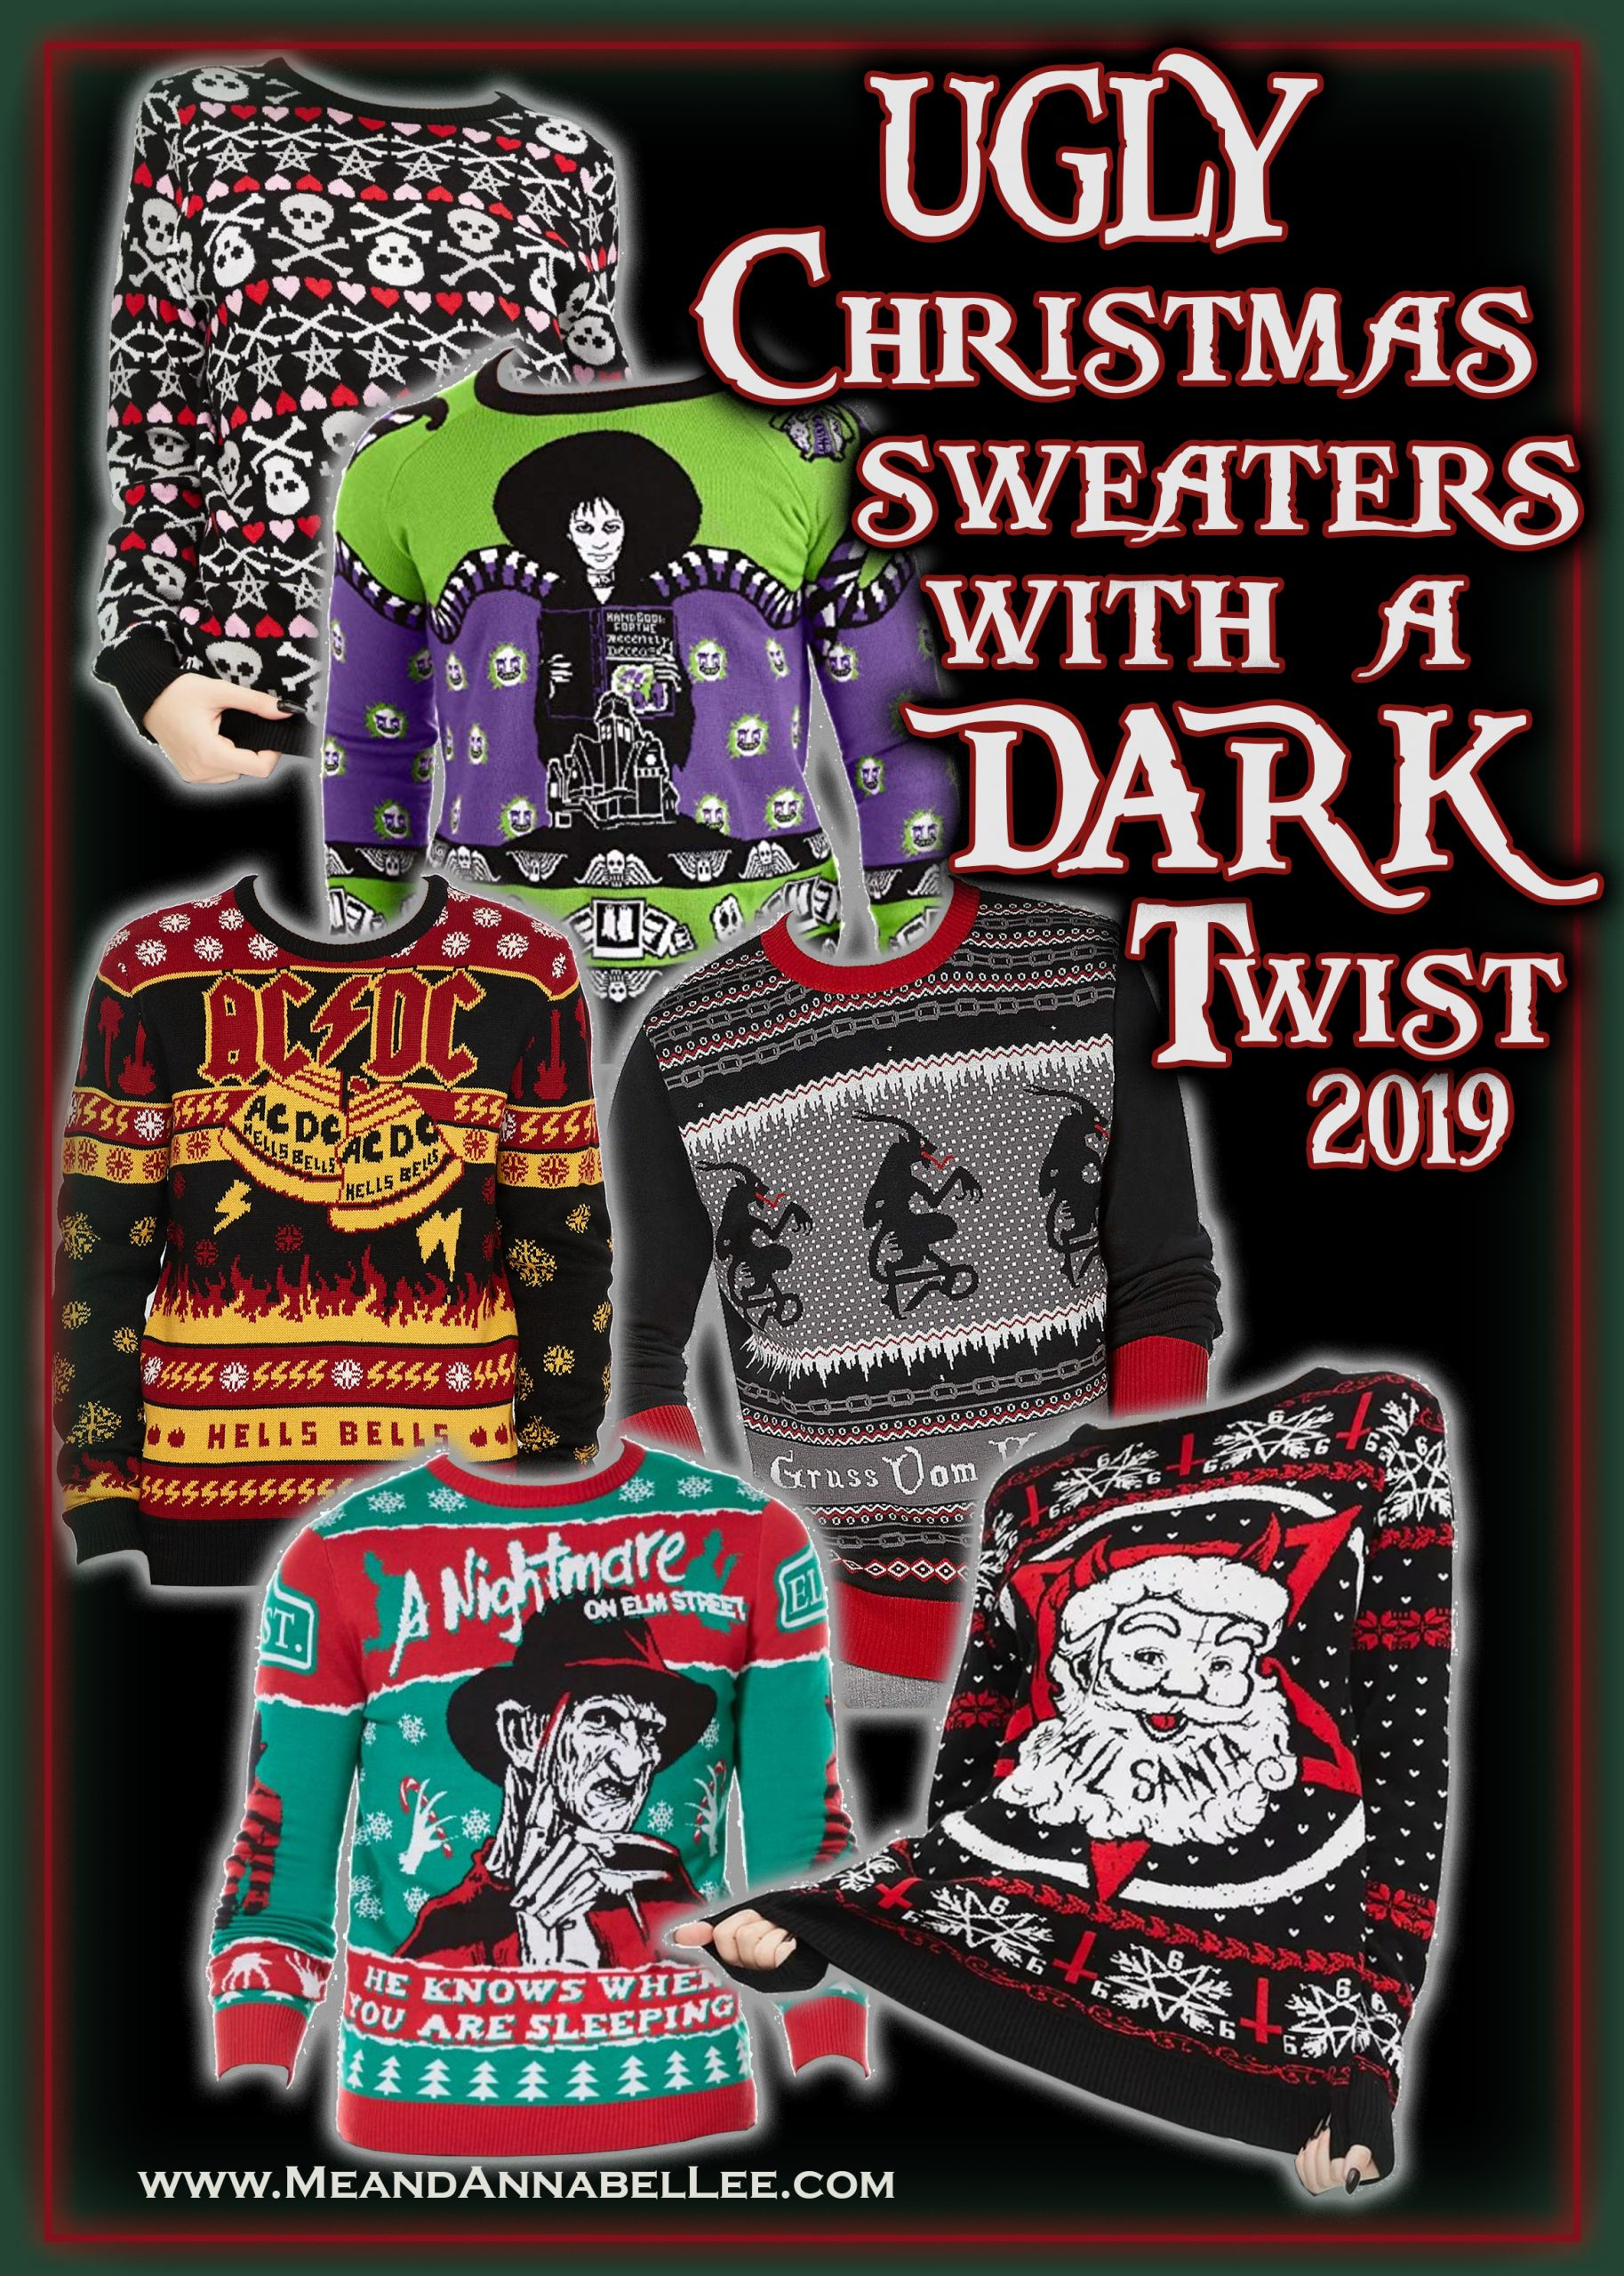 Heavy Metal Christmas Sweater 2020 Dark, Twisted, & Gothic Ugly Creepmas Sweaters | Holiday Apparel